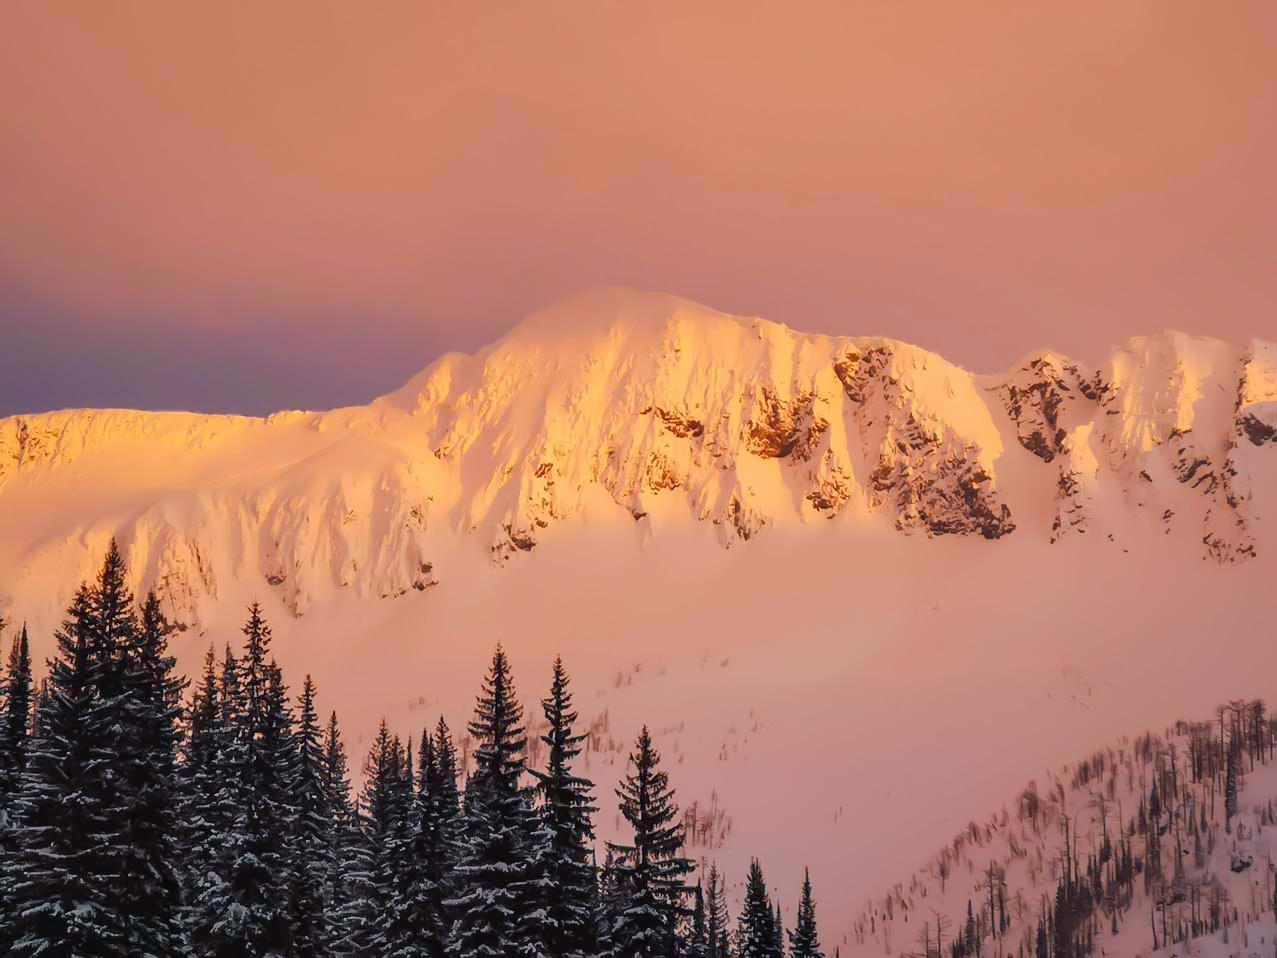 Sunset over snowy BC mountains